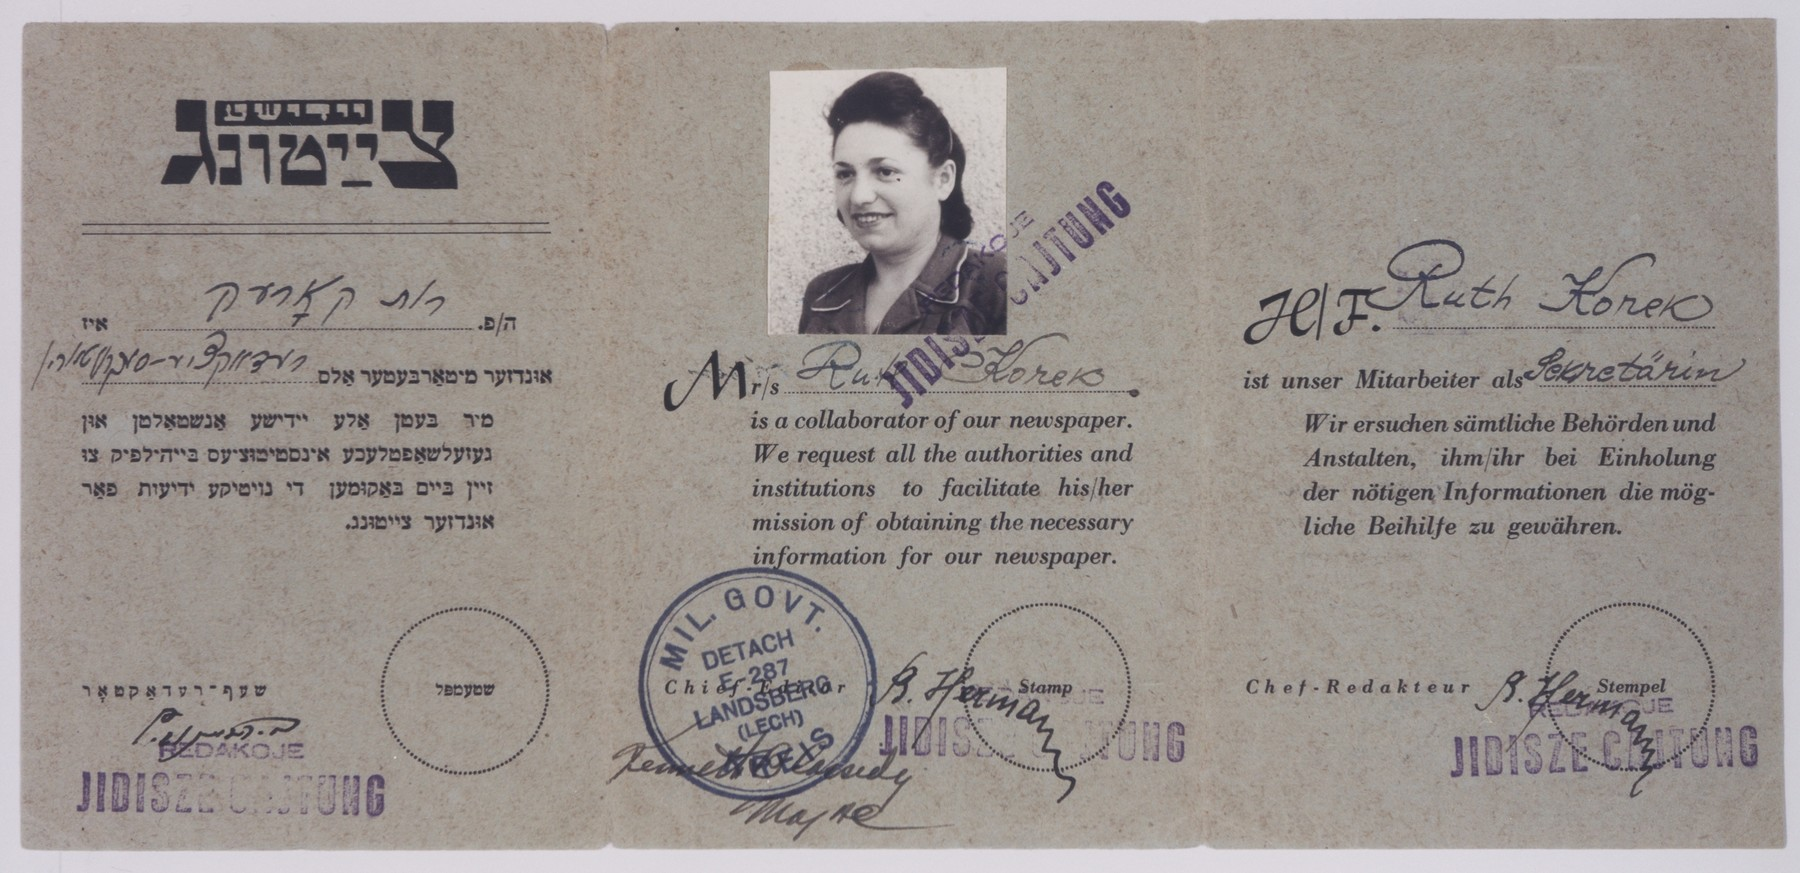 Press card issued to Ruth Korek attesting she is employed by the Landsberg Jidisze Cajtung.